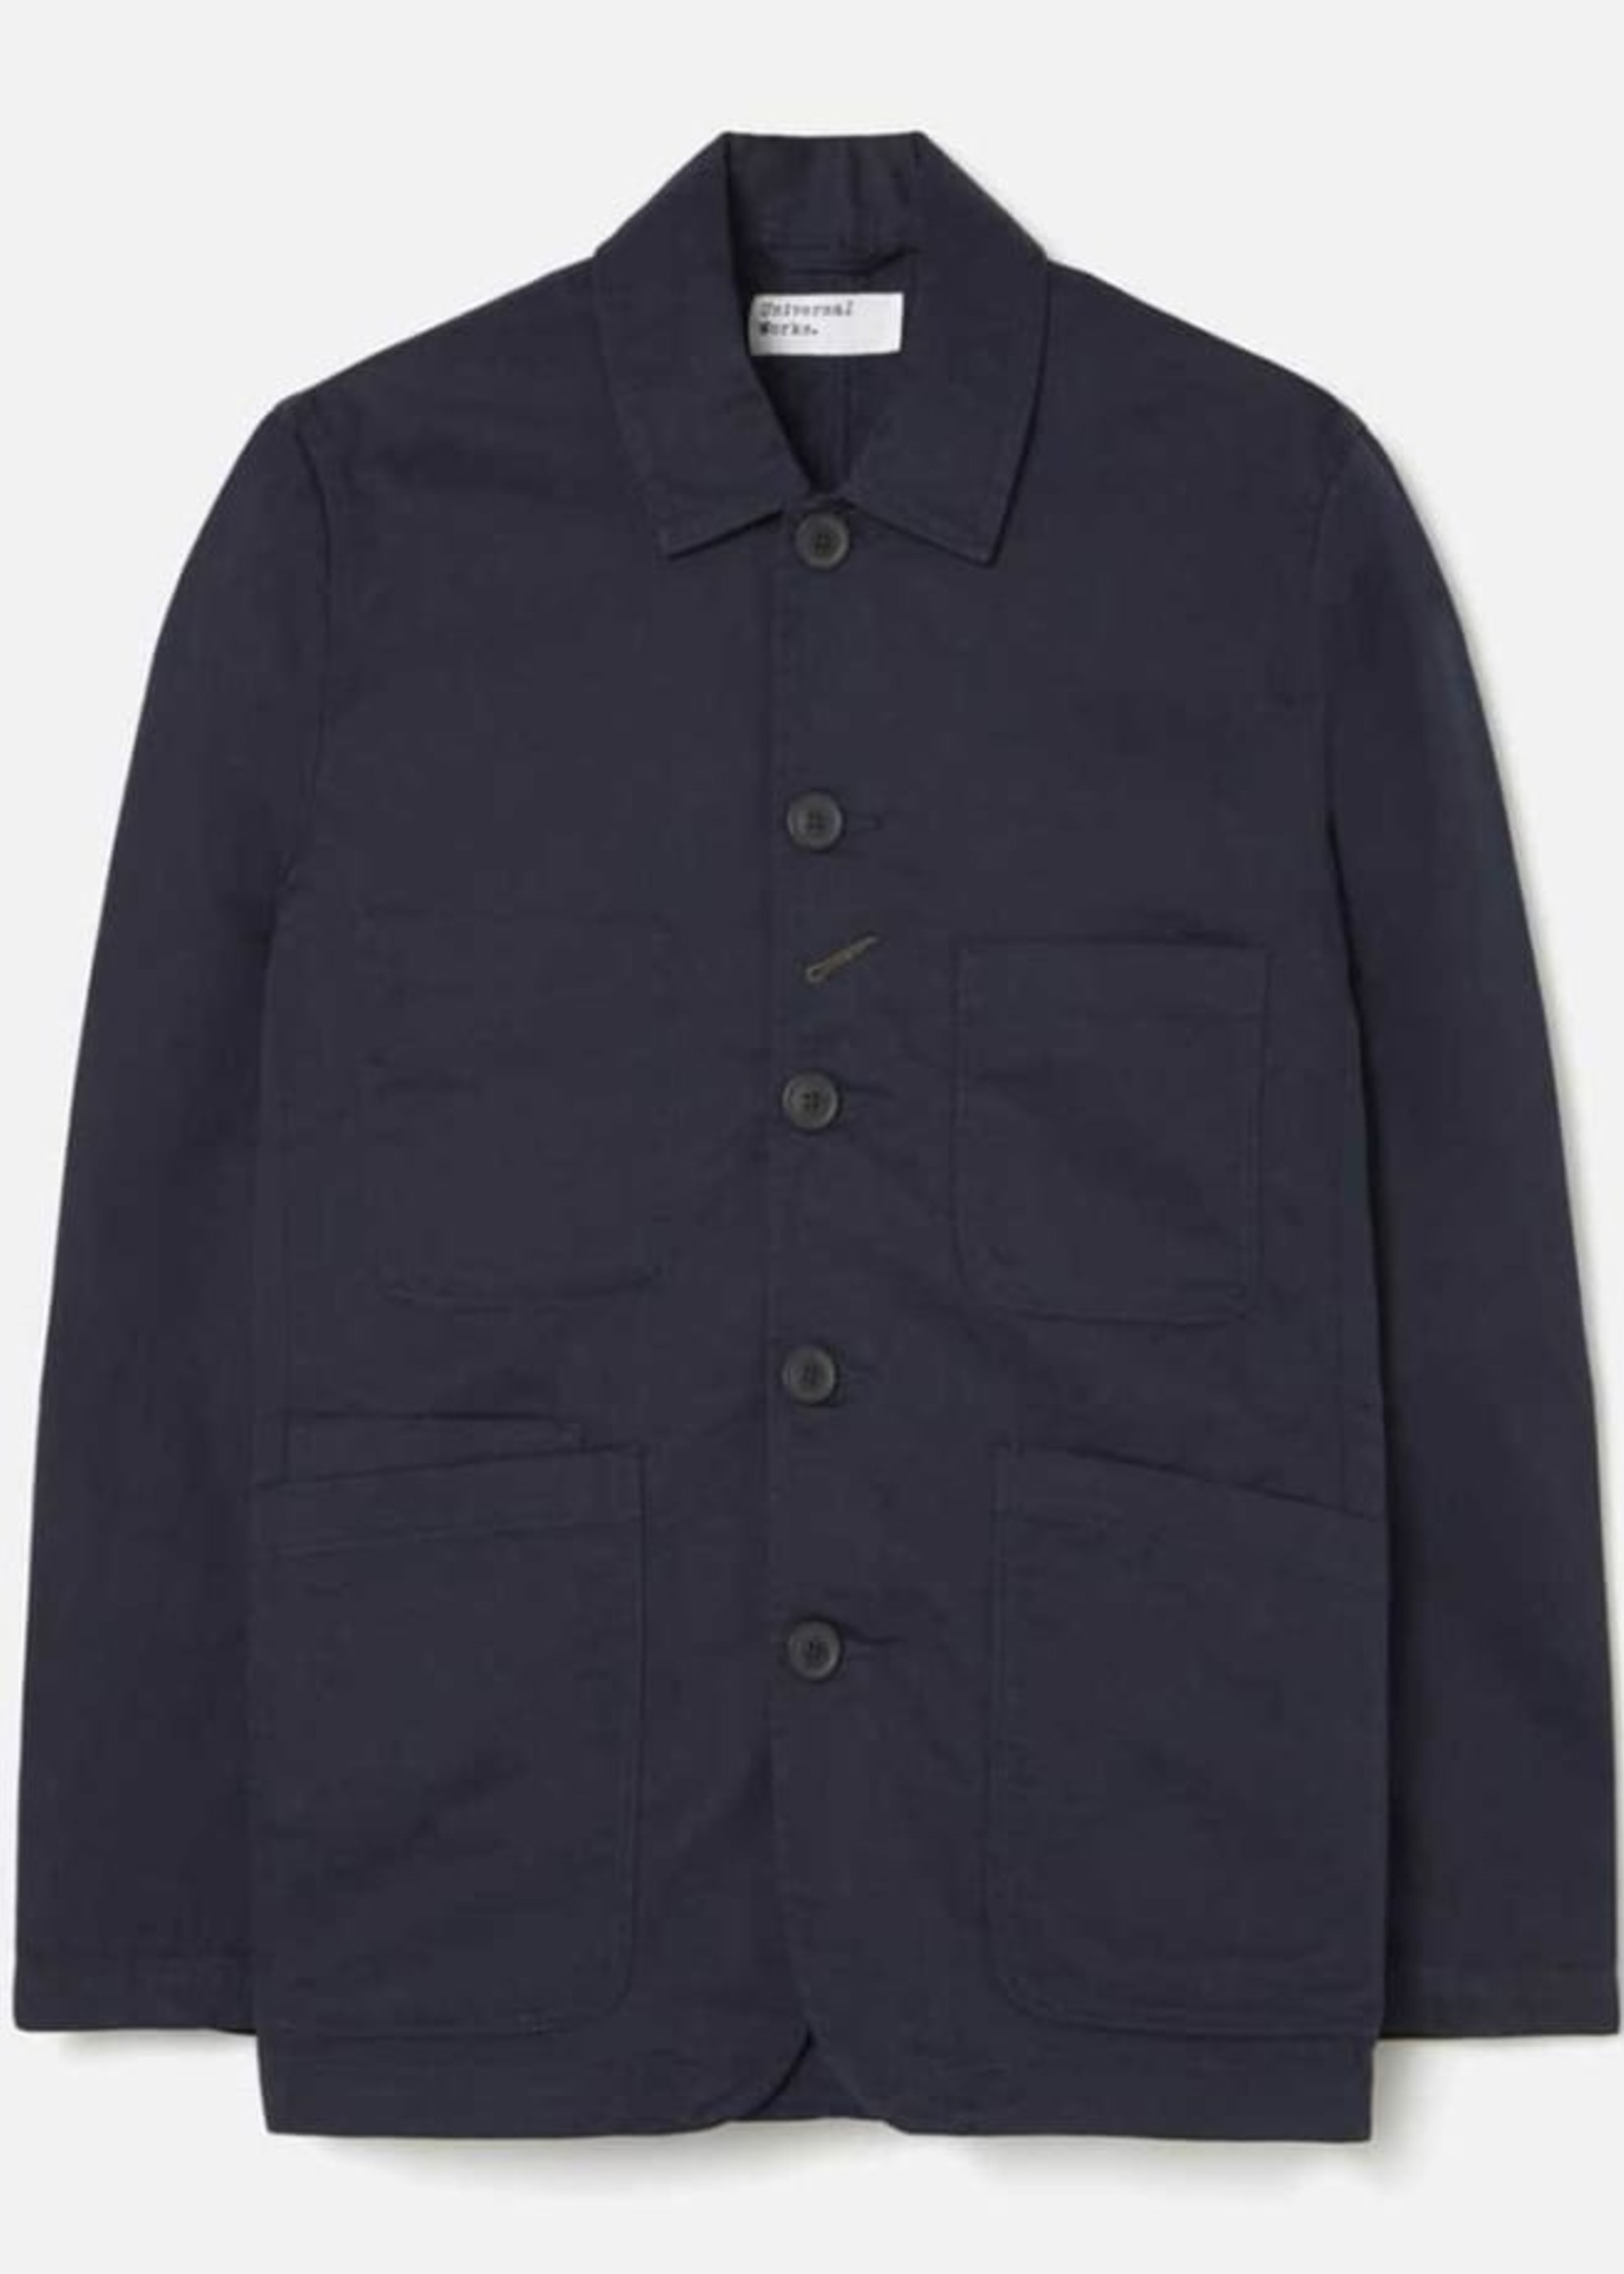 Universal Works Bakers Jacket Navy Cotton Twill by Universal Works